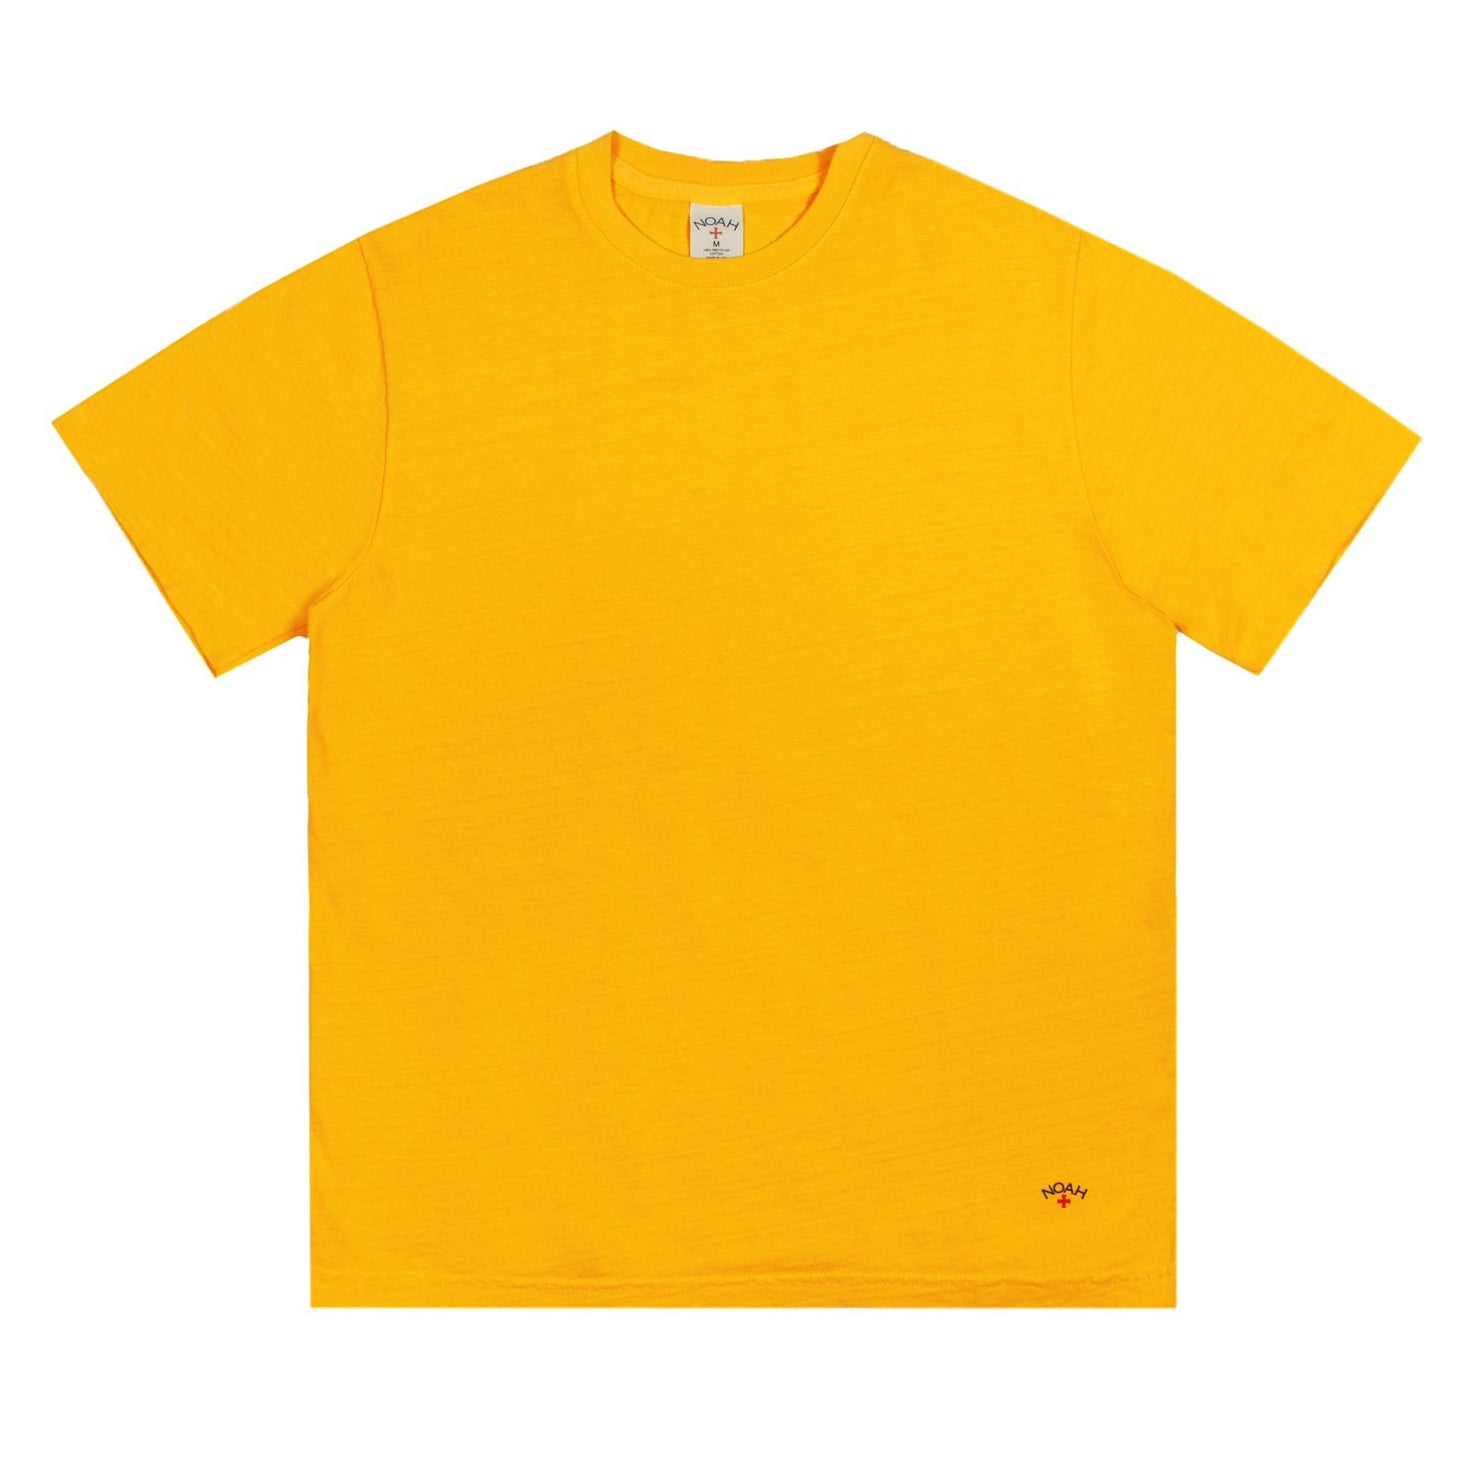 NOAH - Recycled Cotton Tee - Gold